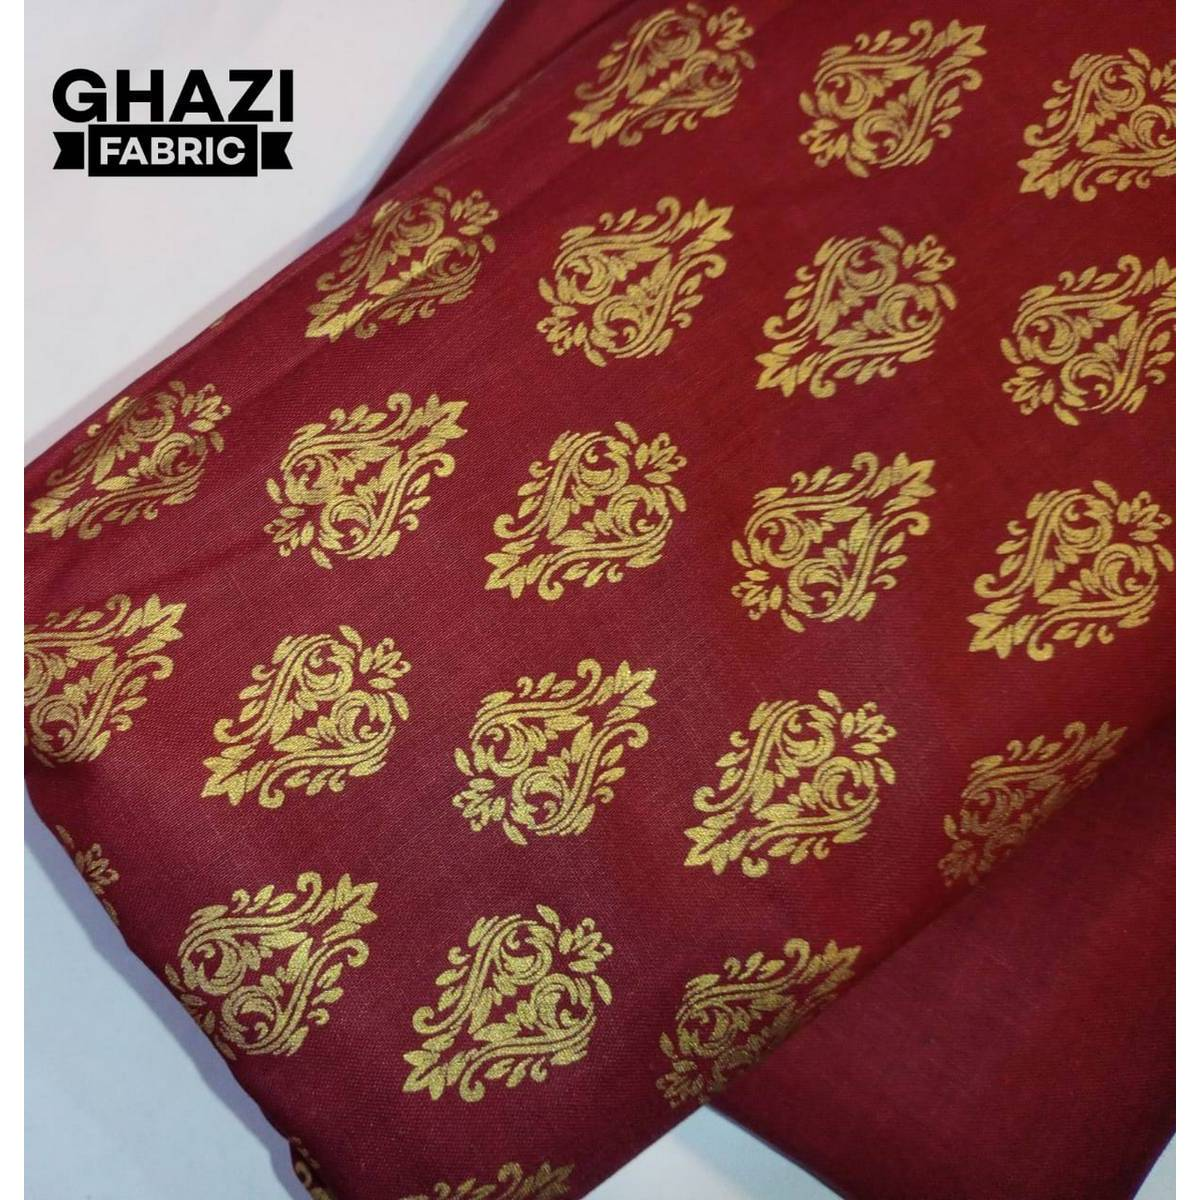 Unstitch Lawn cotton 2 piece Printed shirt plain trouser New Lawn Collection  premium quality fabric product of GHAZI FABRIC